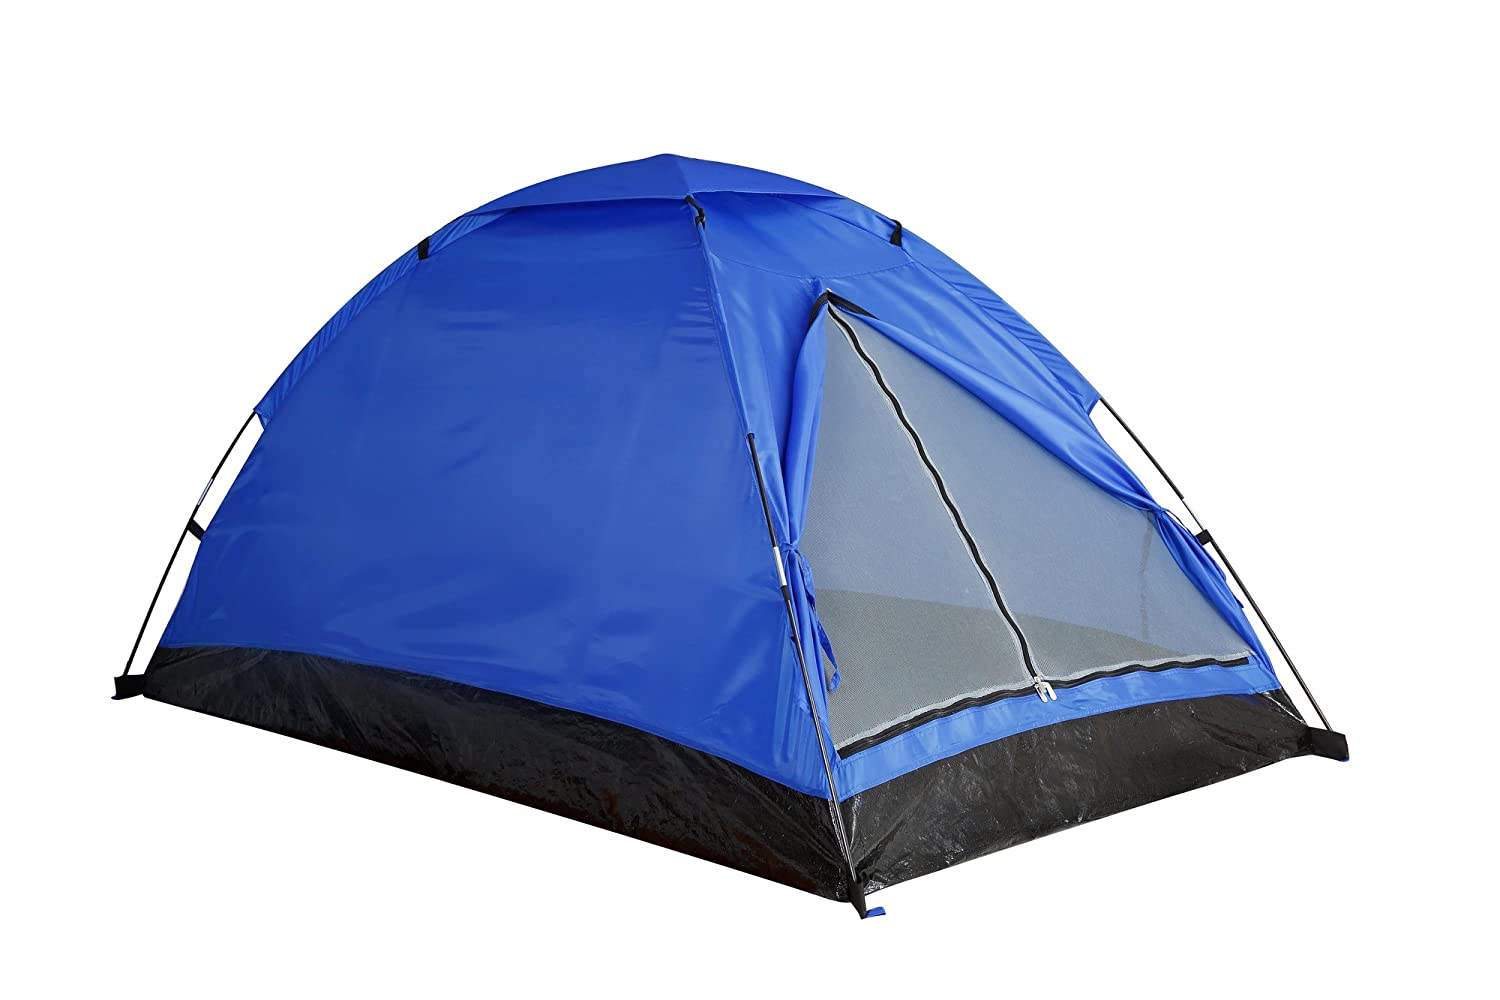 Amazon.com  C&ing Tents Outdoor Travelite Backpacking Light-Weight Family Dome Tent - 2 Person 2 Season Hiking Fishing Instant Portable Shelter w/ Easy ...  sc 1 st  Amazon.com & Amazon.com : Camping Tents Outdoor Travelite Backpacking Light ...